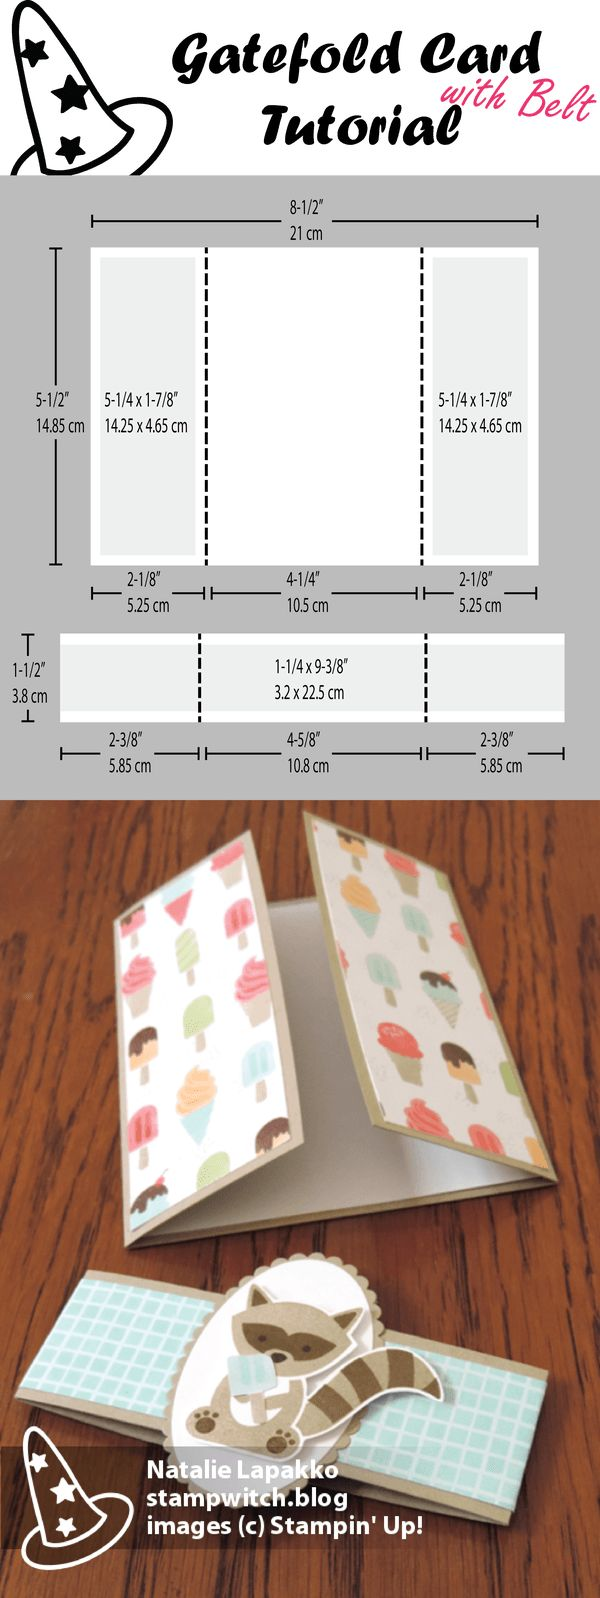 Gate-Fold Card Tutorial...